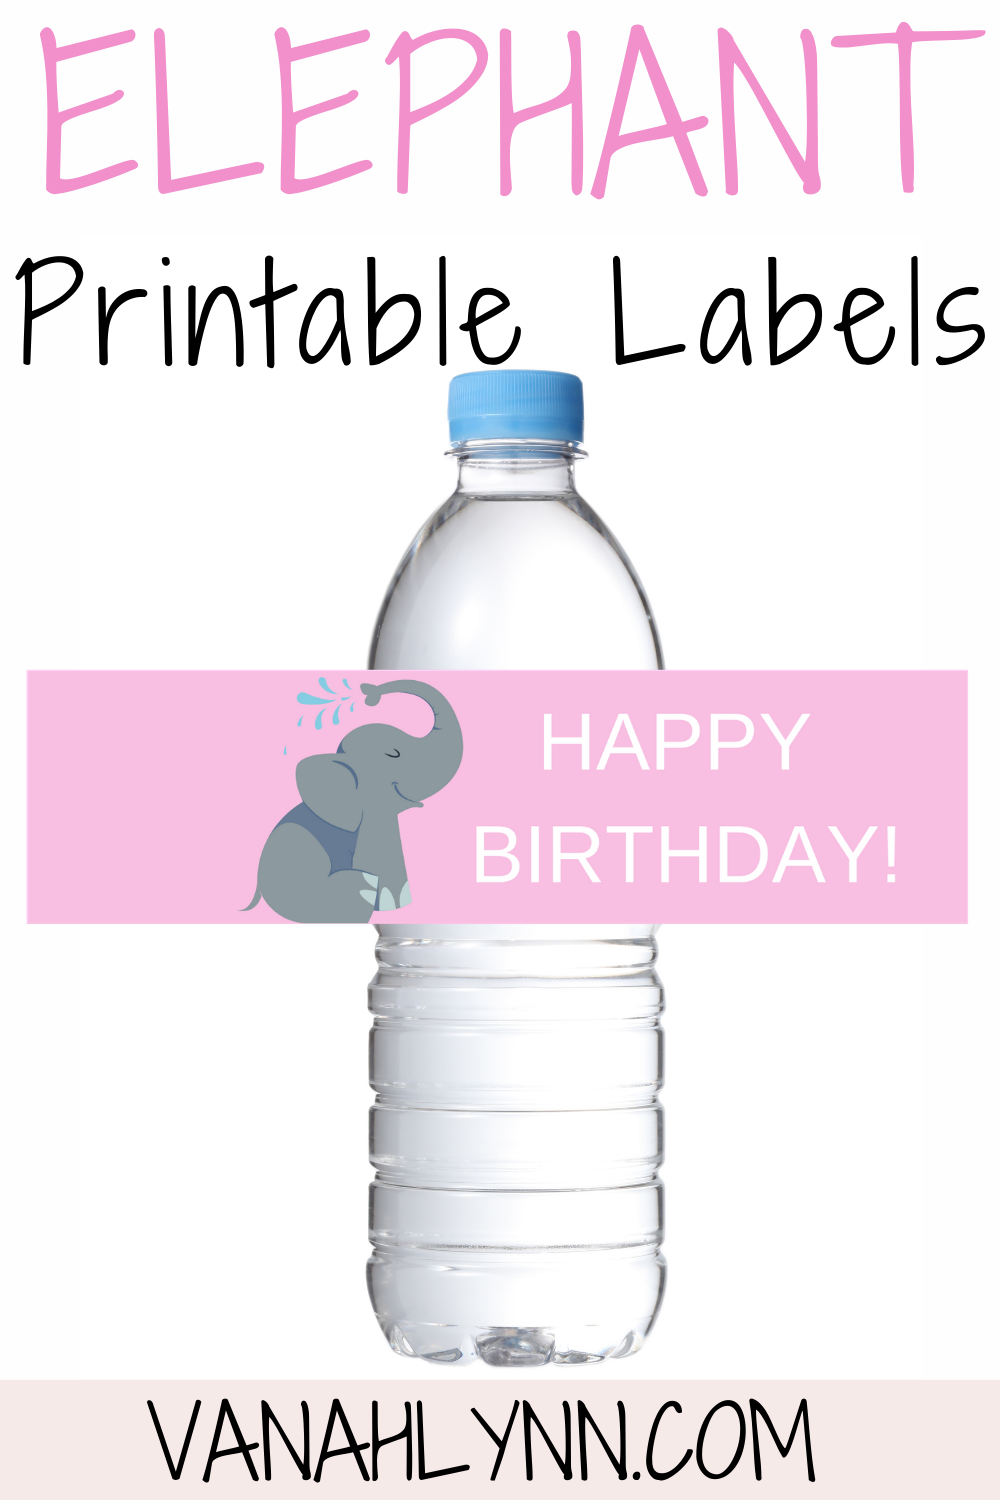 free download: water bottle wrapper for an elephant birthday party